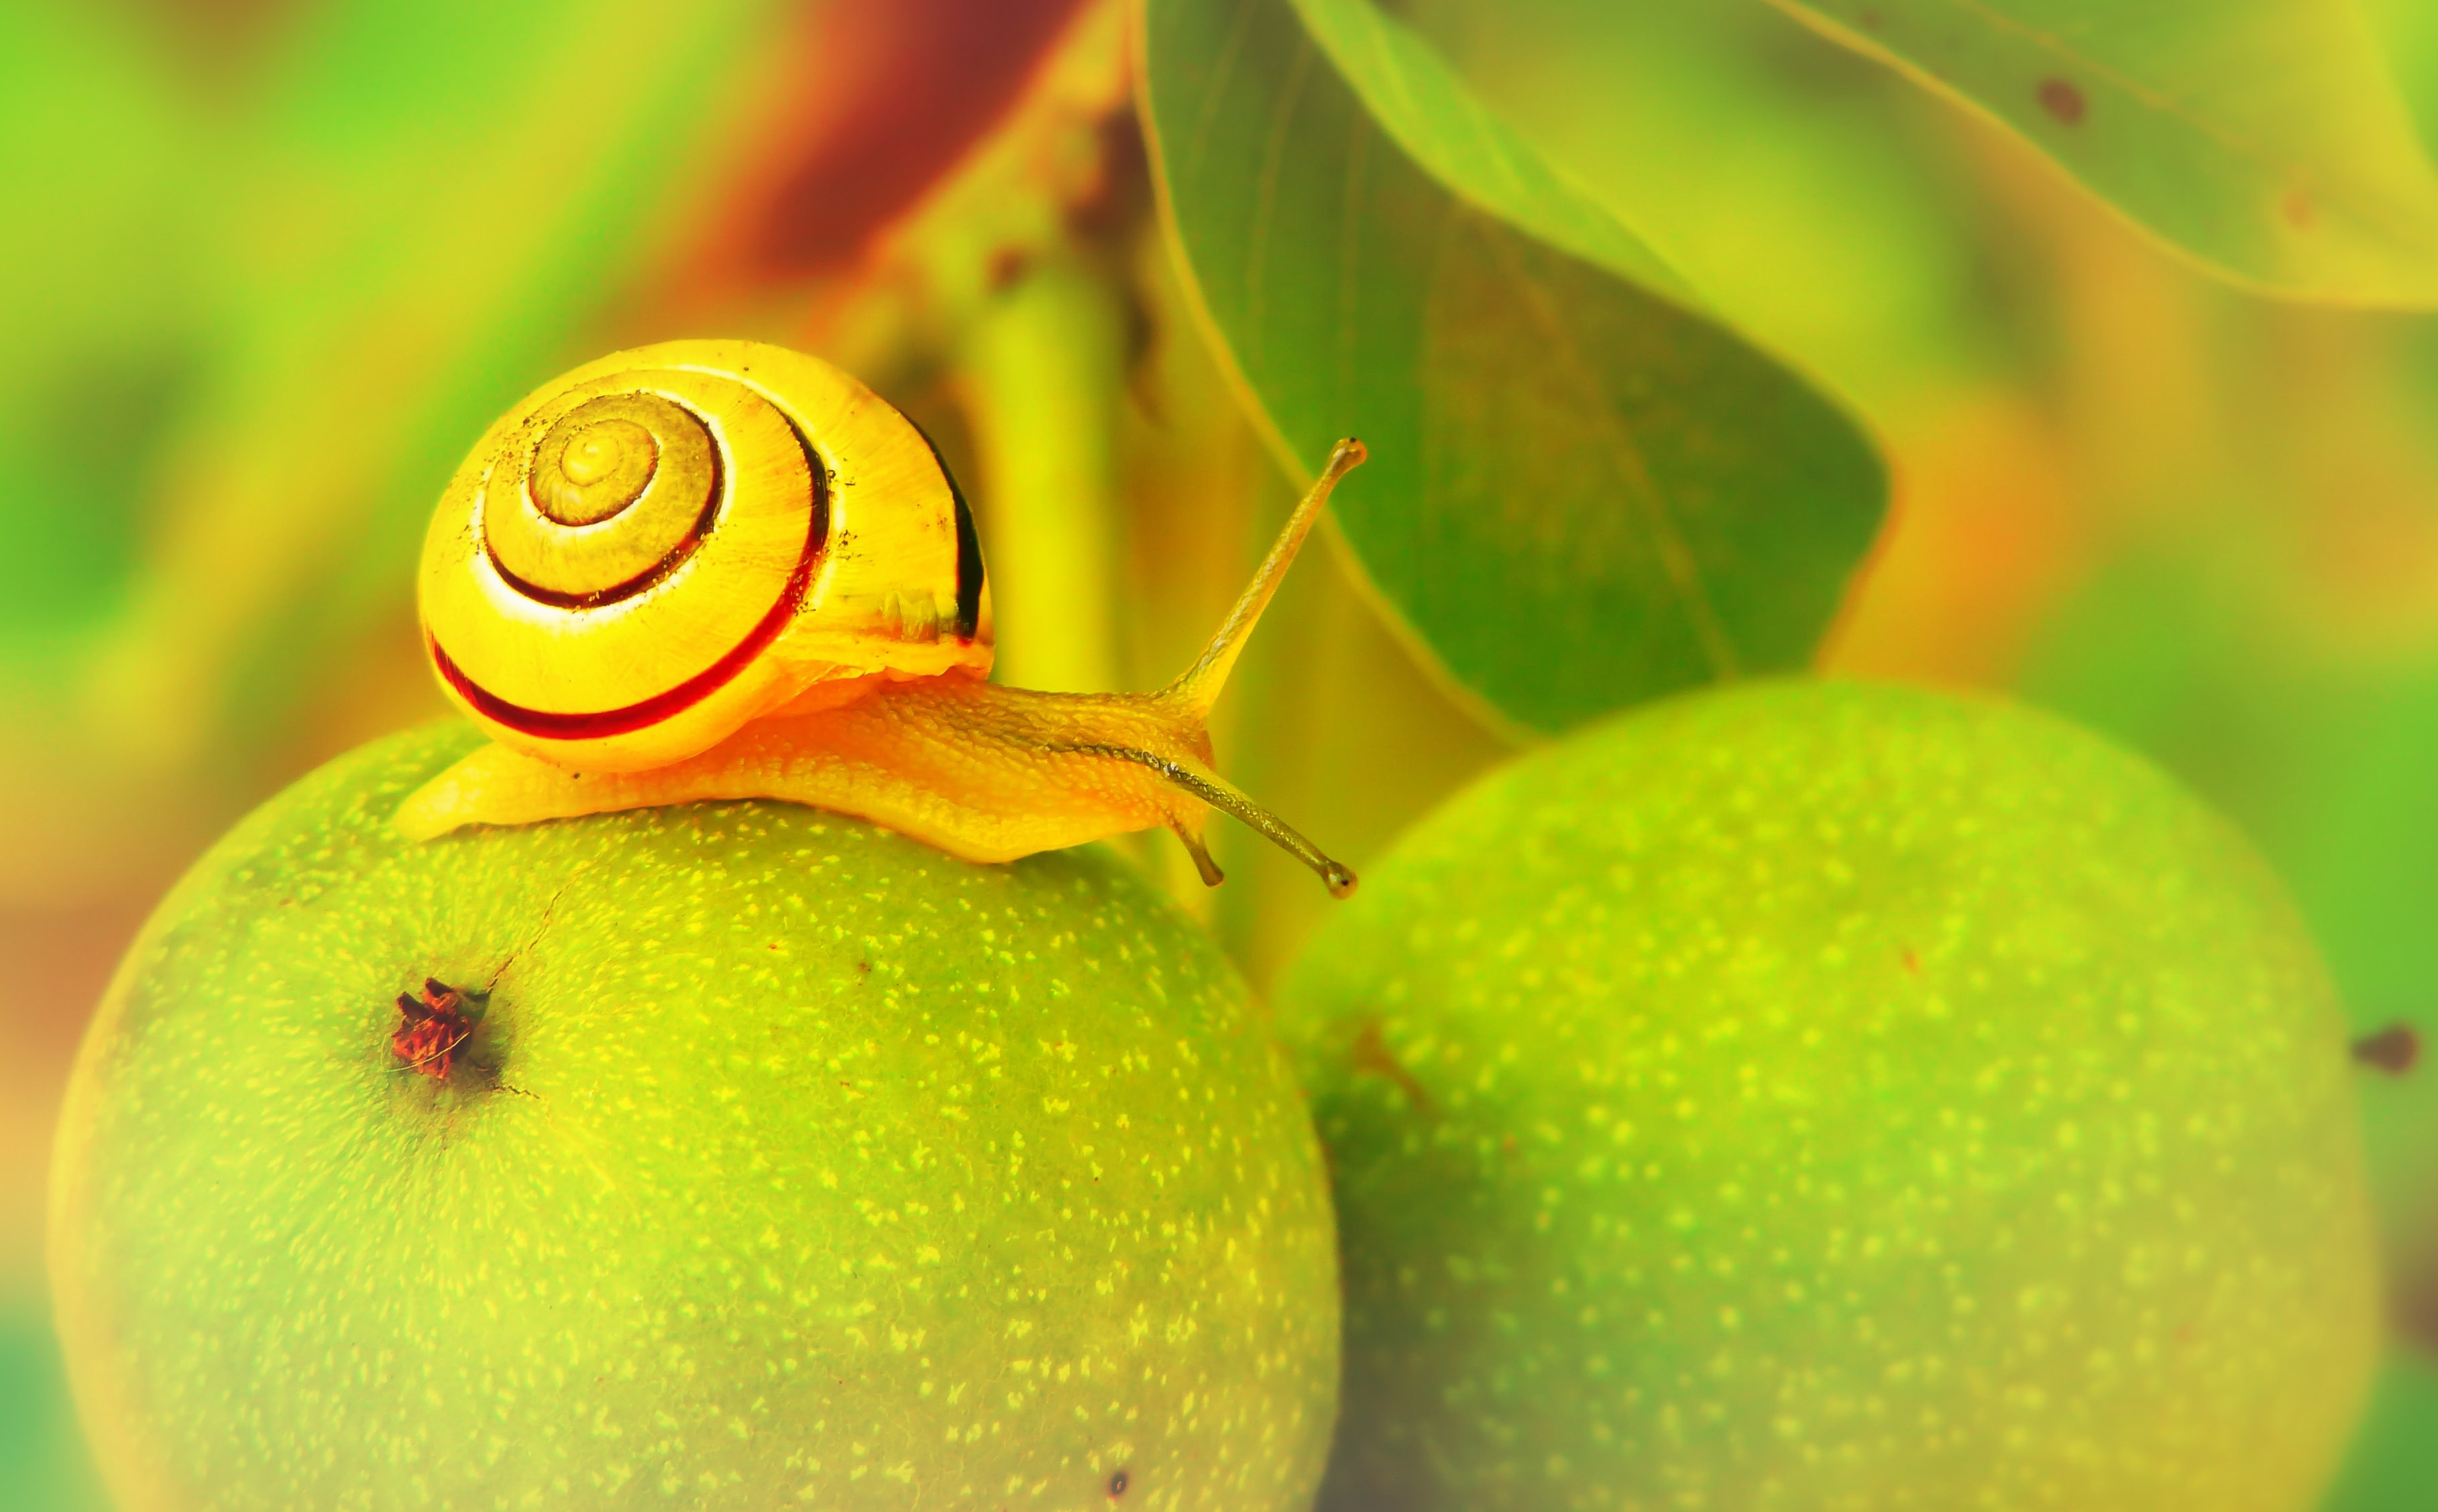 brown snail on green fruits